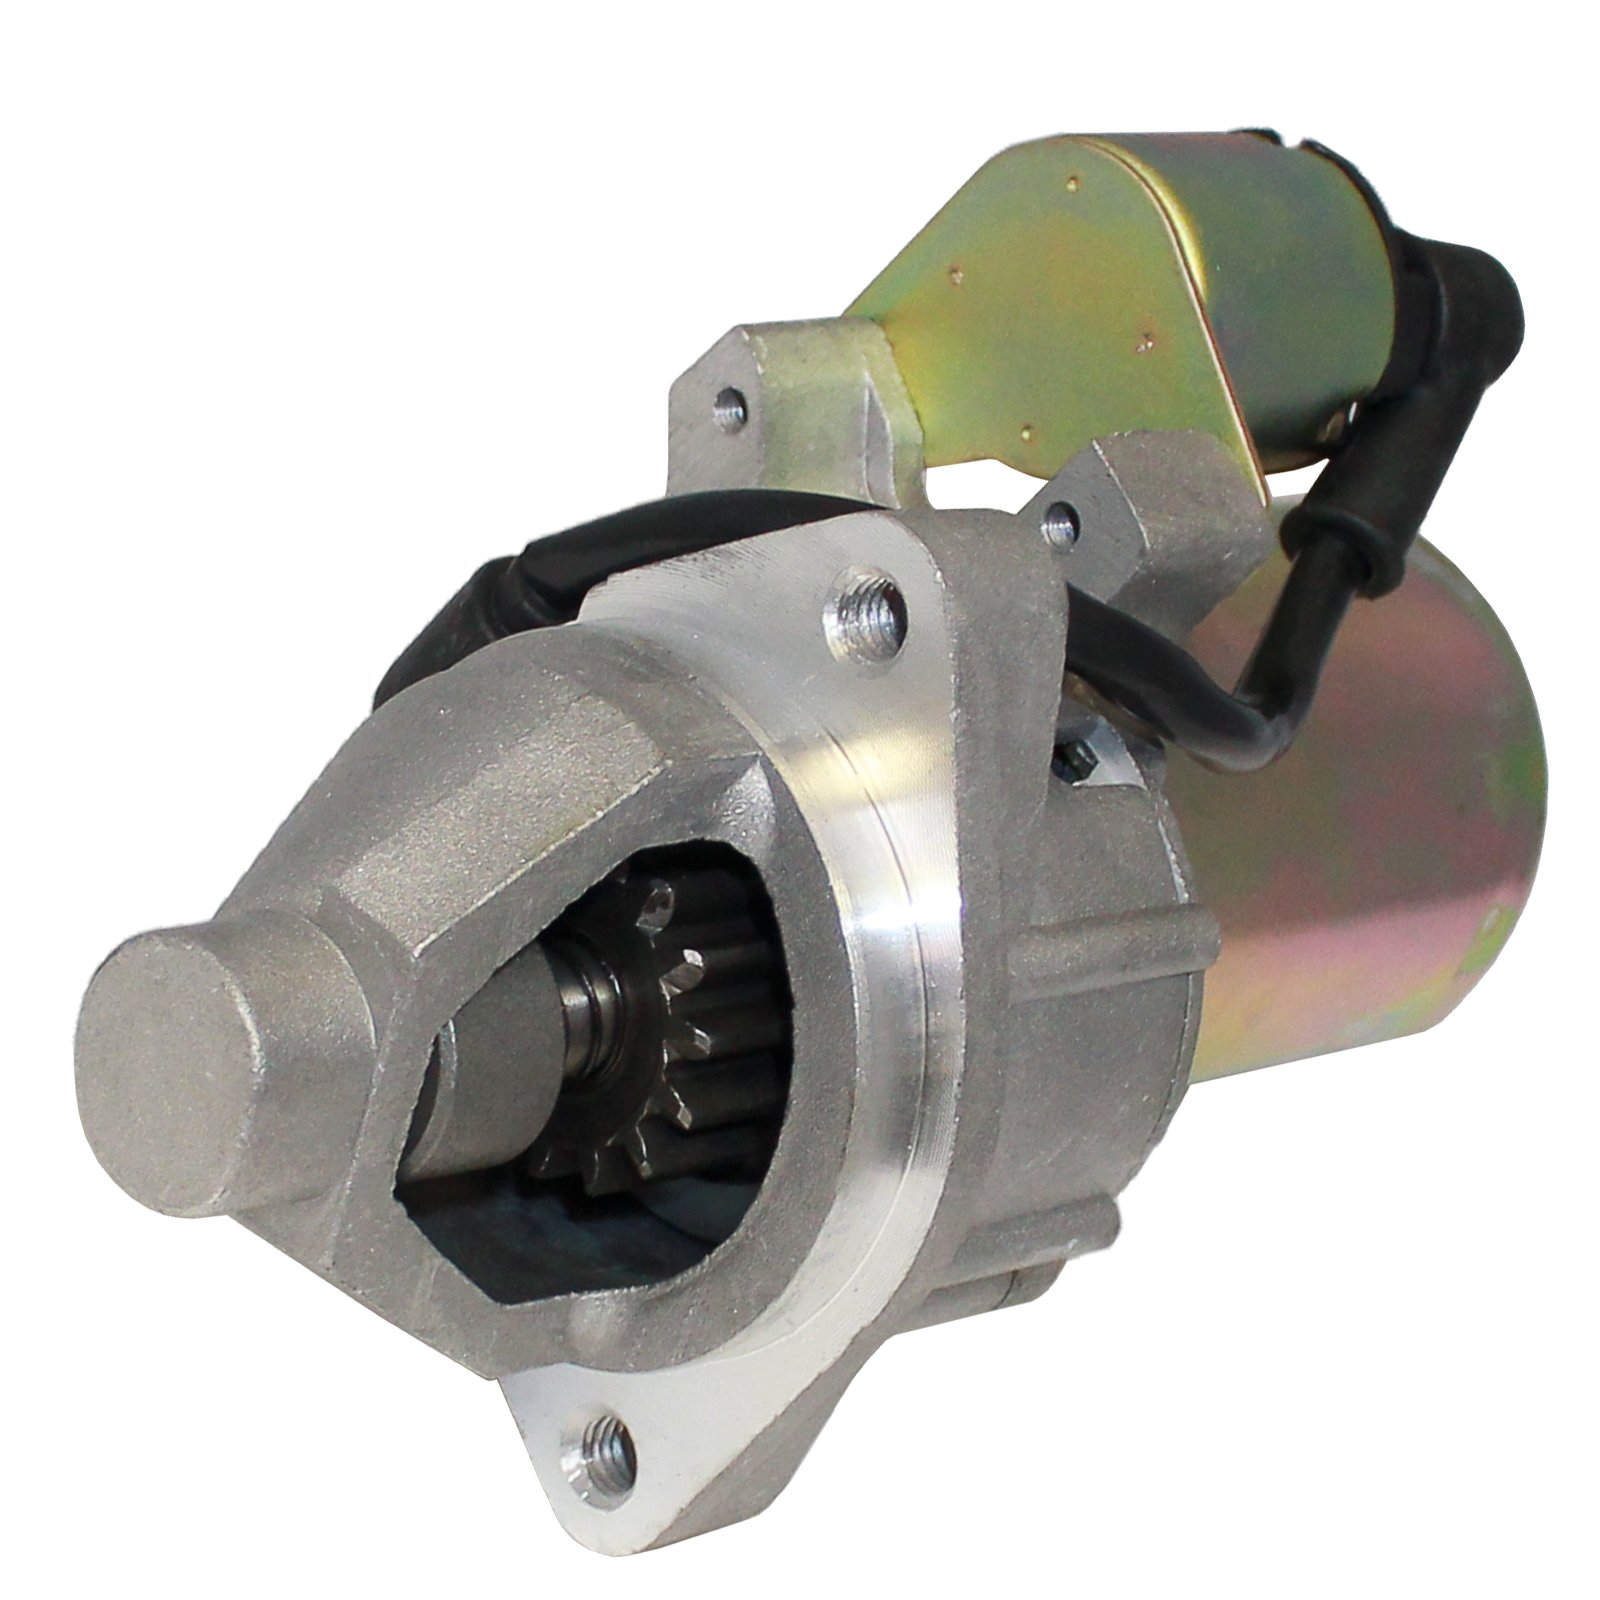 Get Quotations · CALTRIC STARTER Fits Honda engine GX 340 390 11hp 13hp